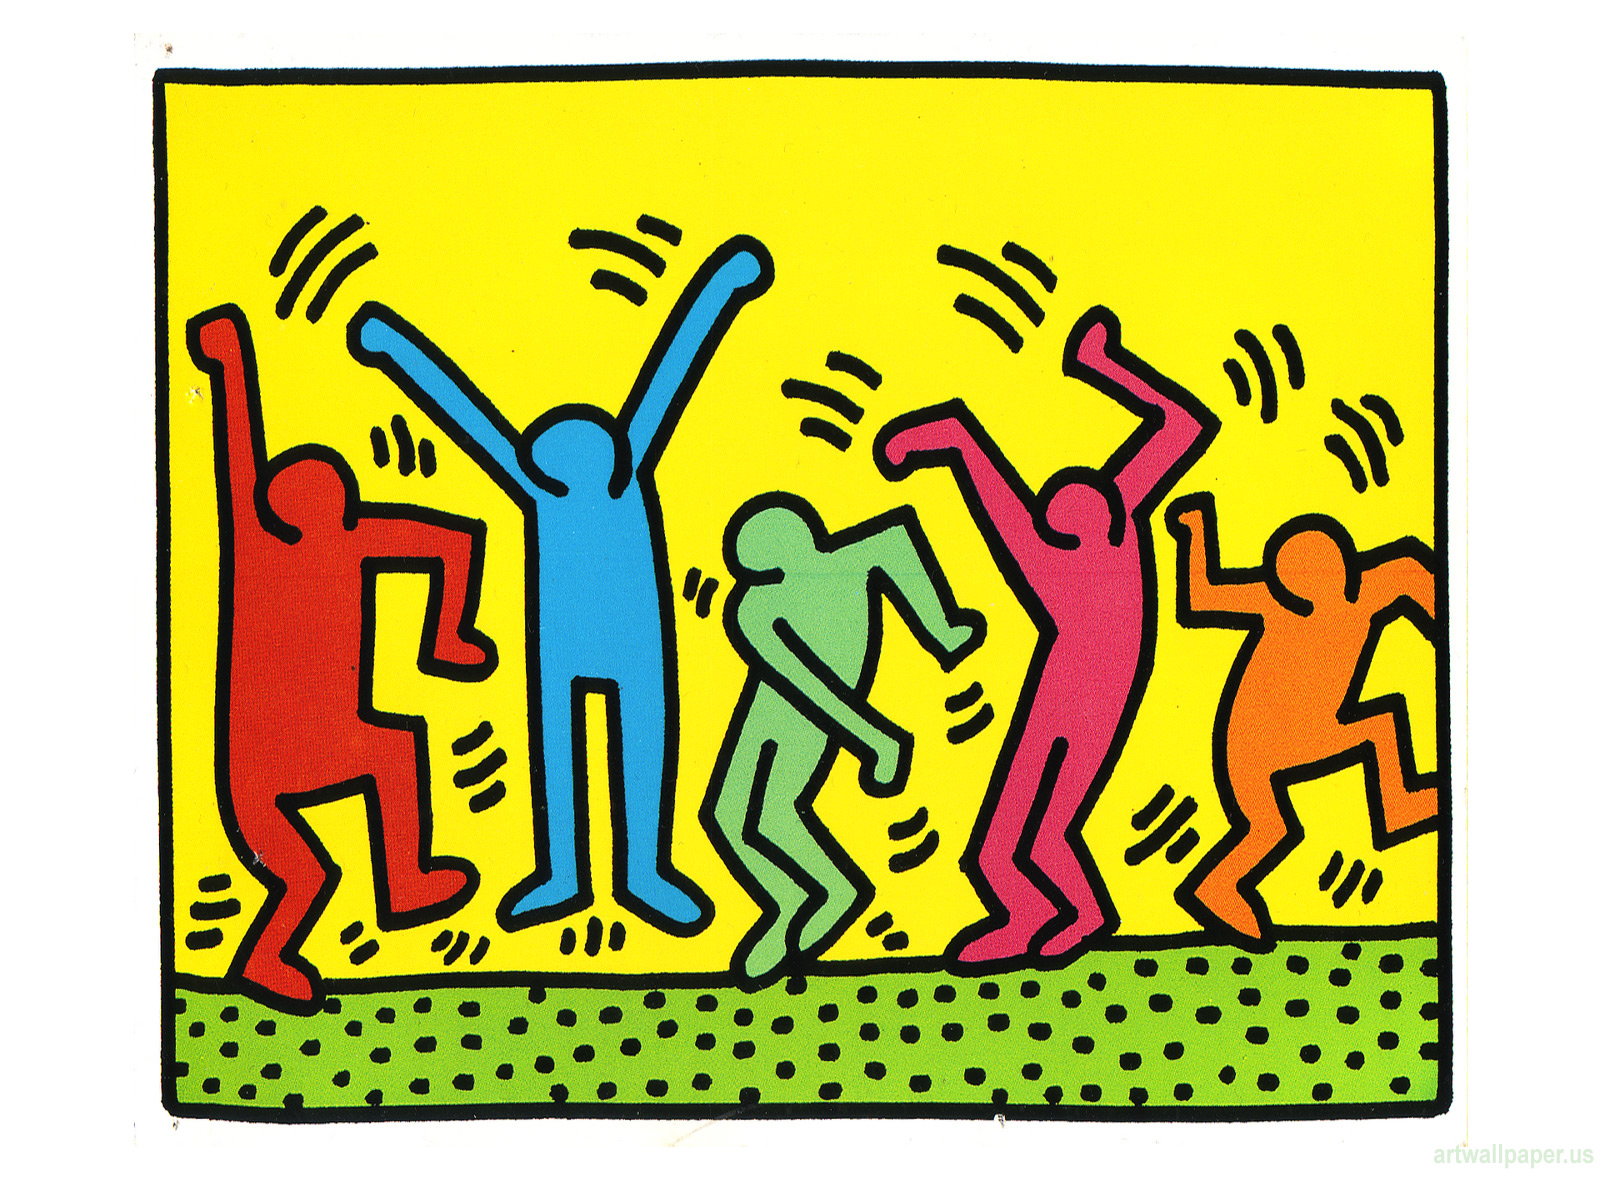 Artwork by Keith Haring - Wallpaper, | Artstack - art online